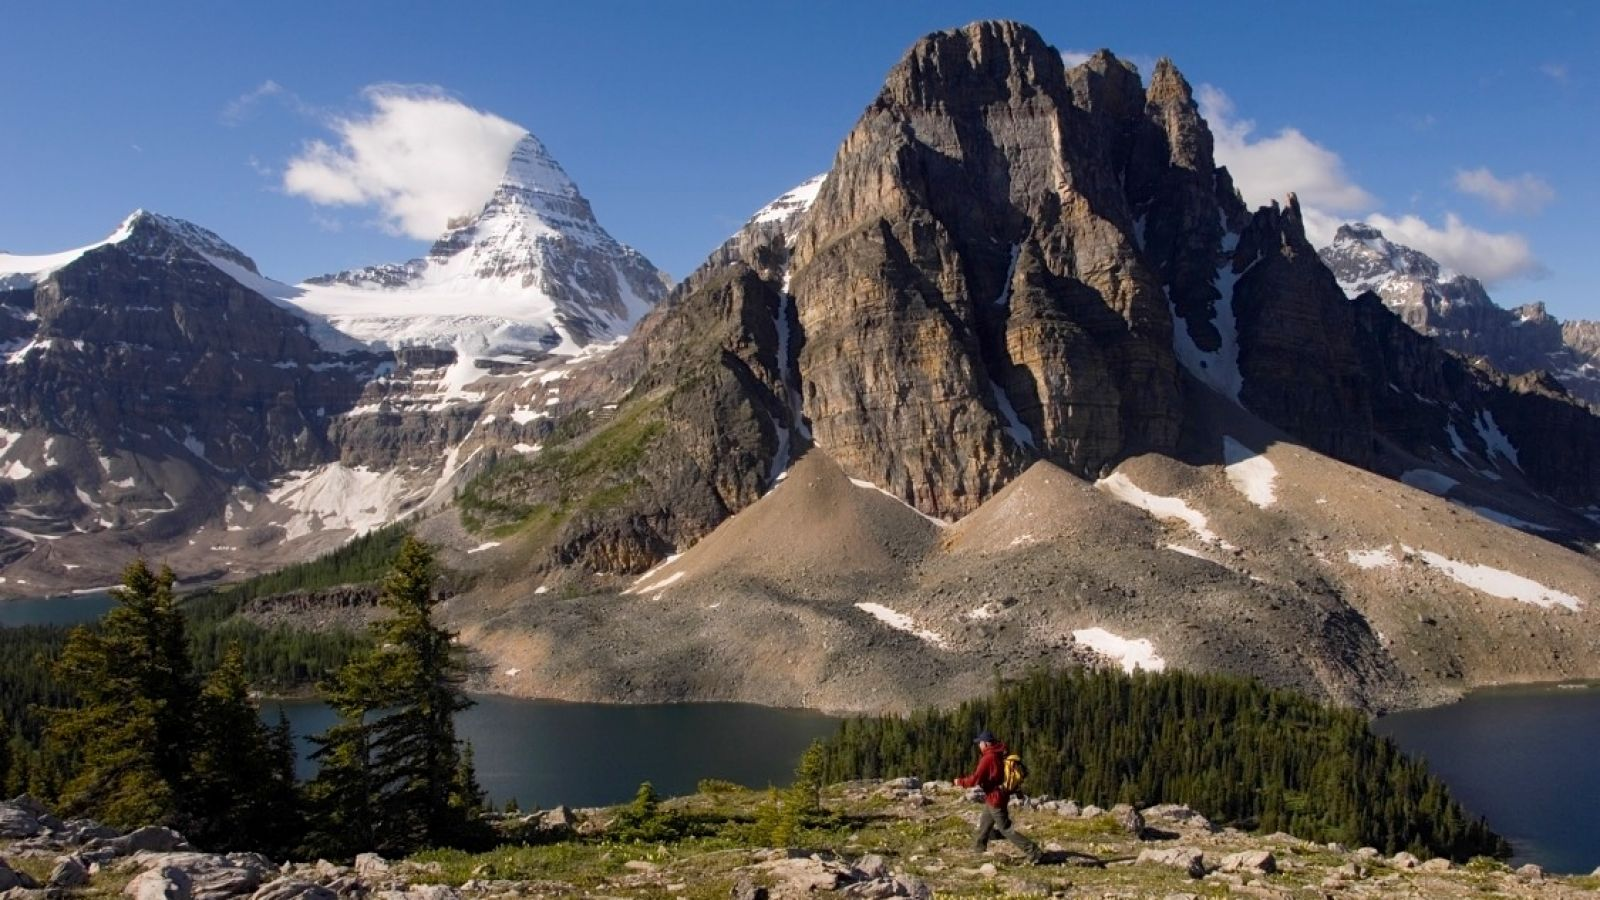 Hiking in Mt. Assiniboine Provincial Park